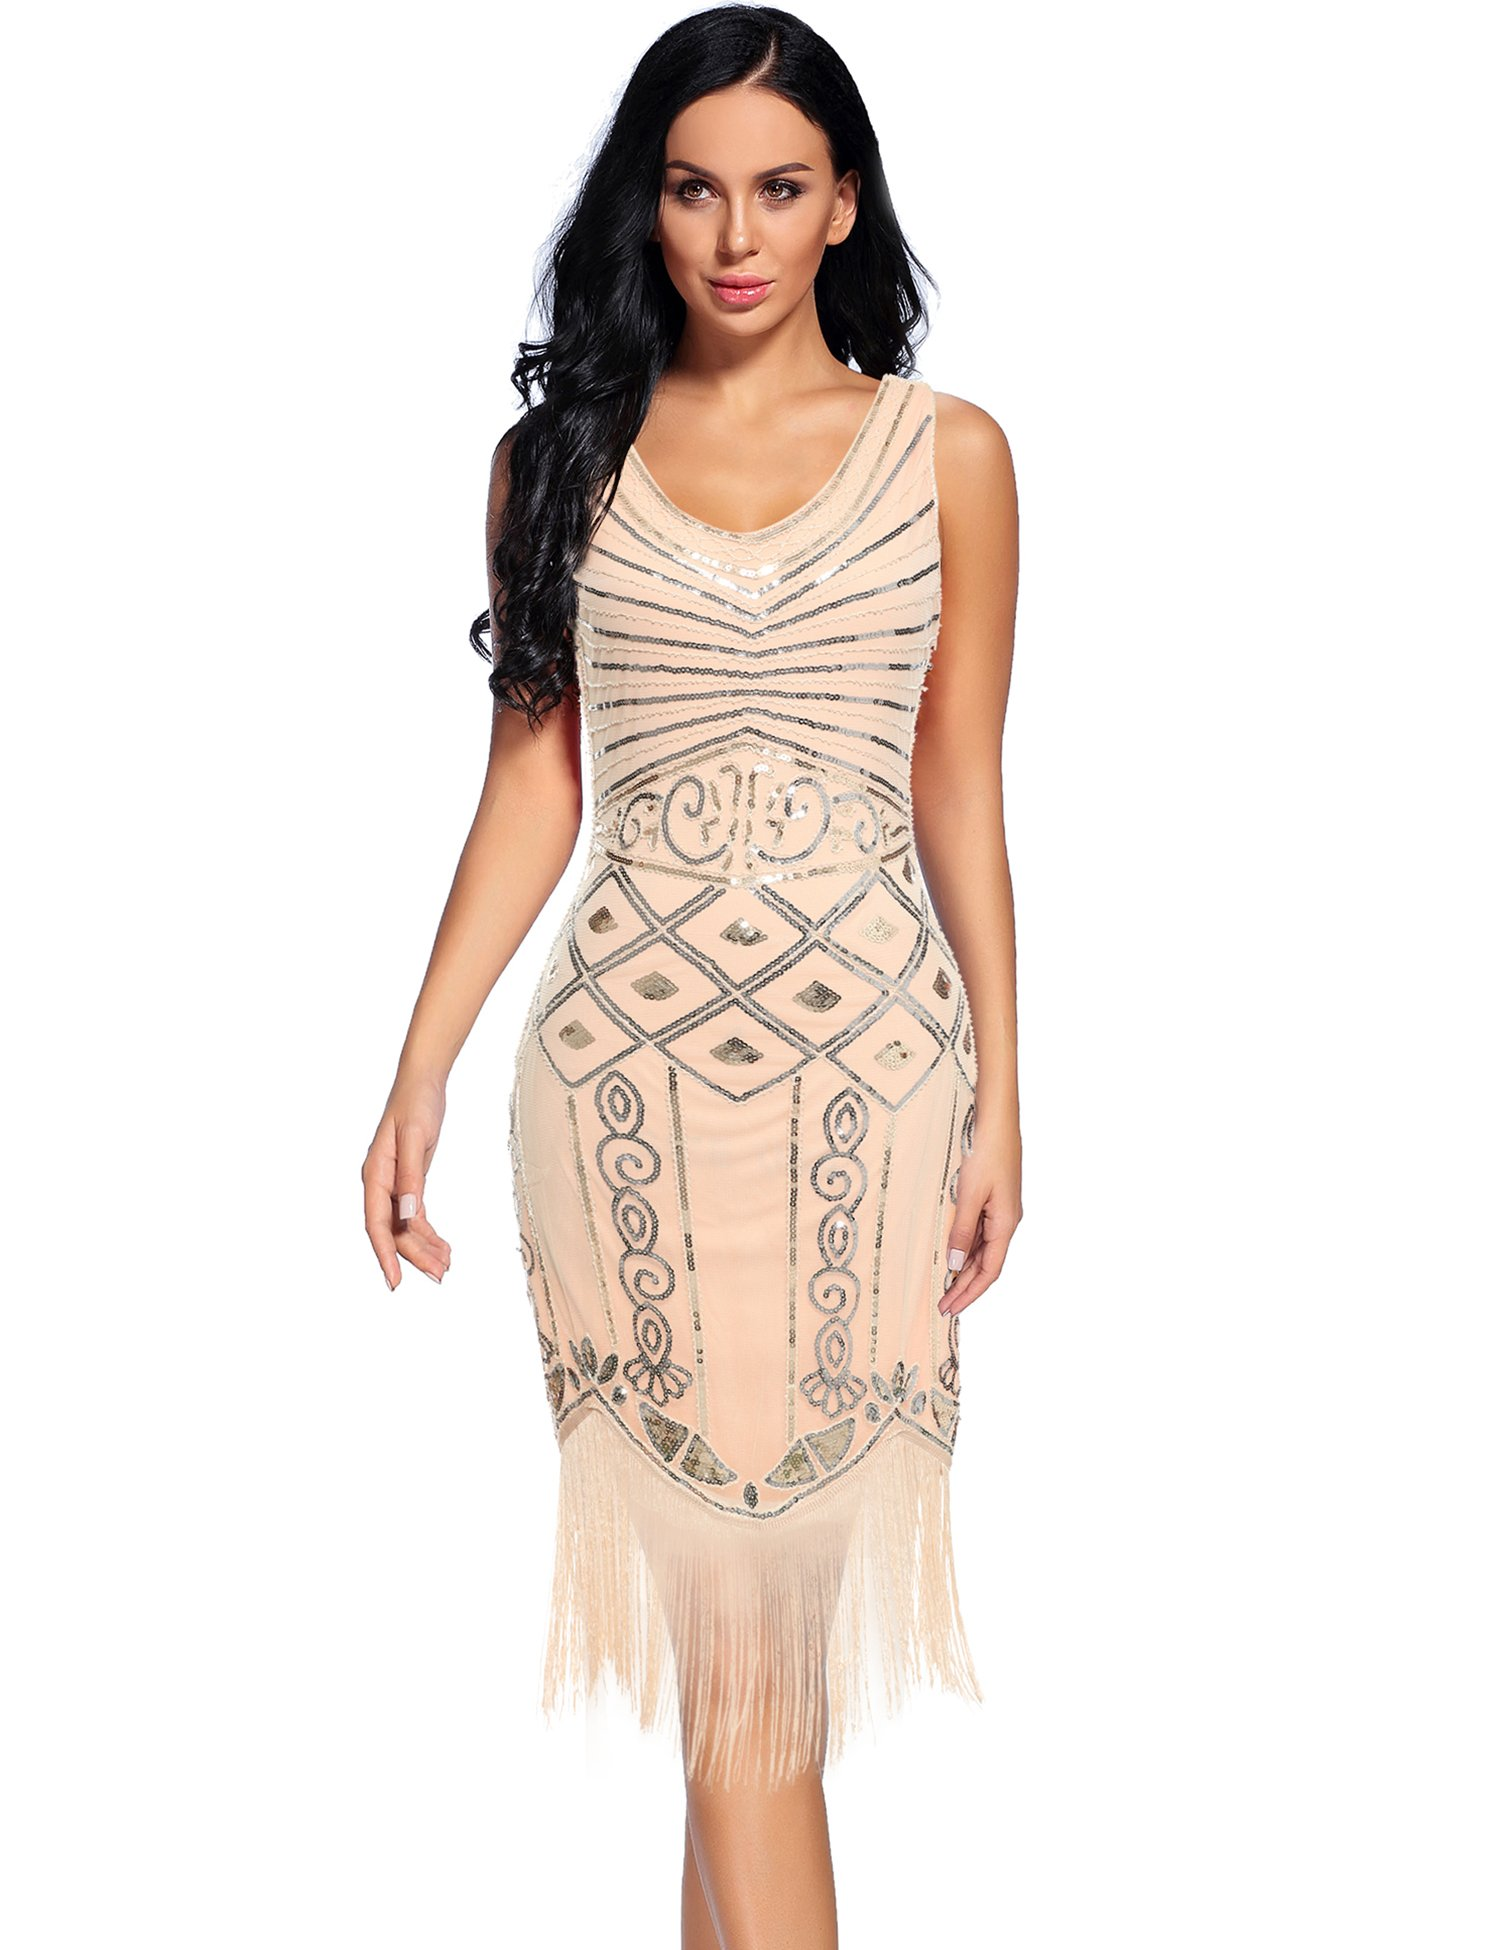 1920 Dresses V Neck Sequin Flapper Great Gatsby Fringed Cocktail Dress